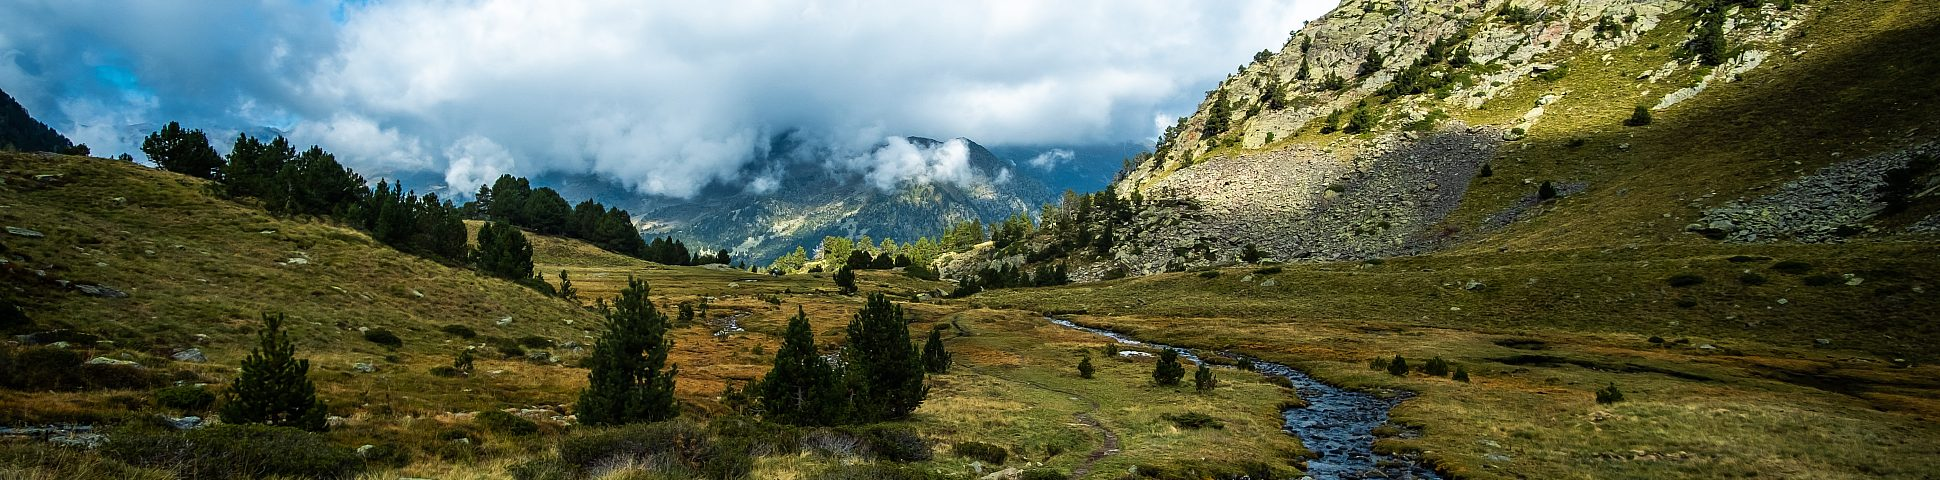 Pyrenees (Spain)